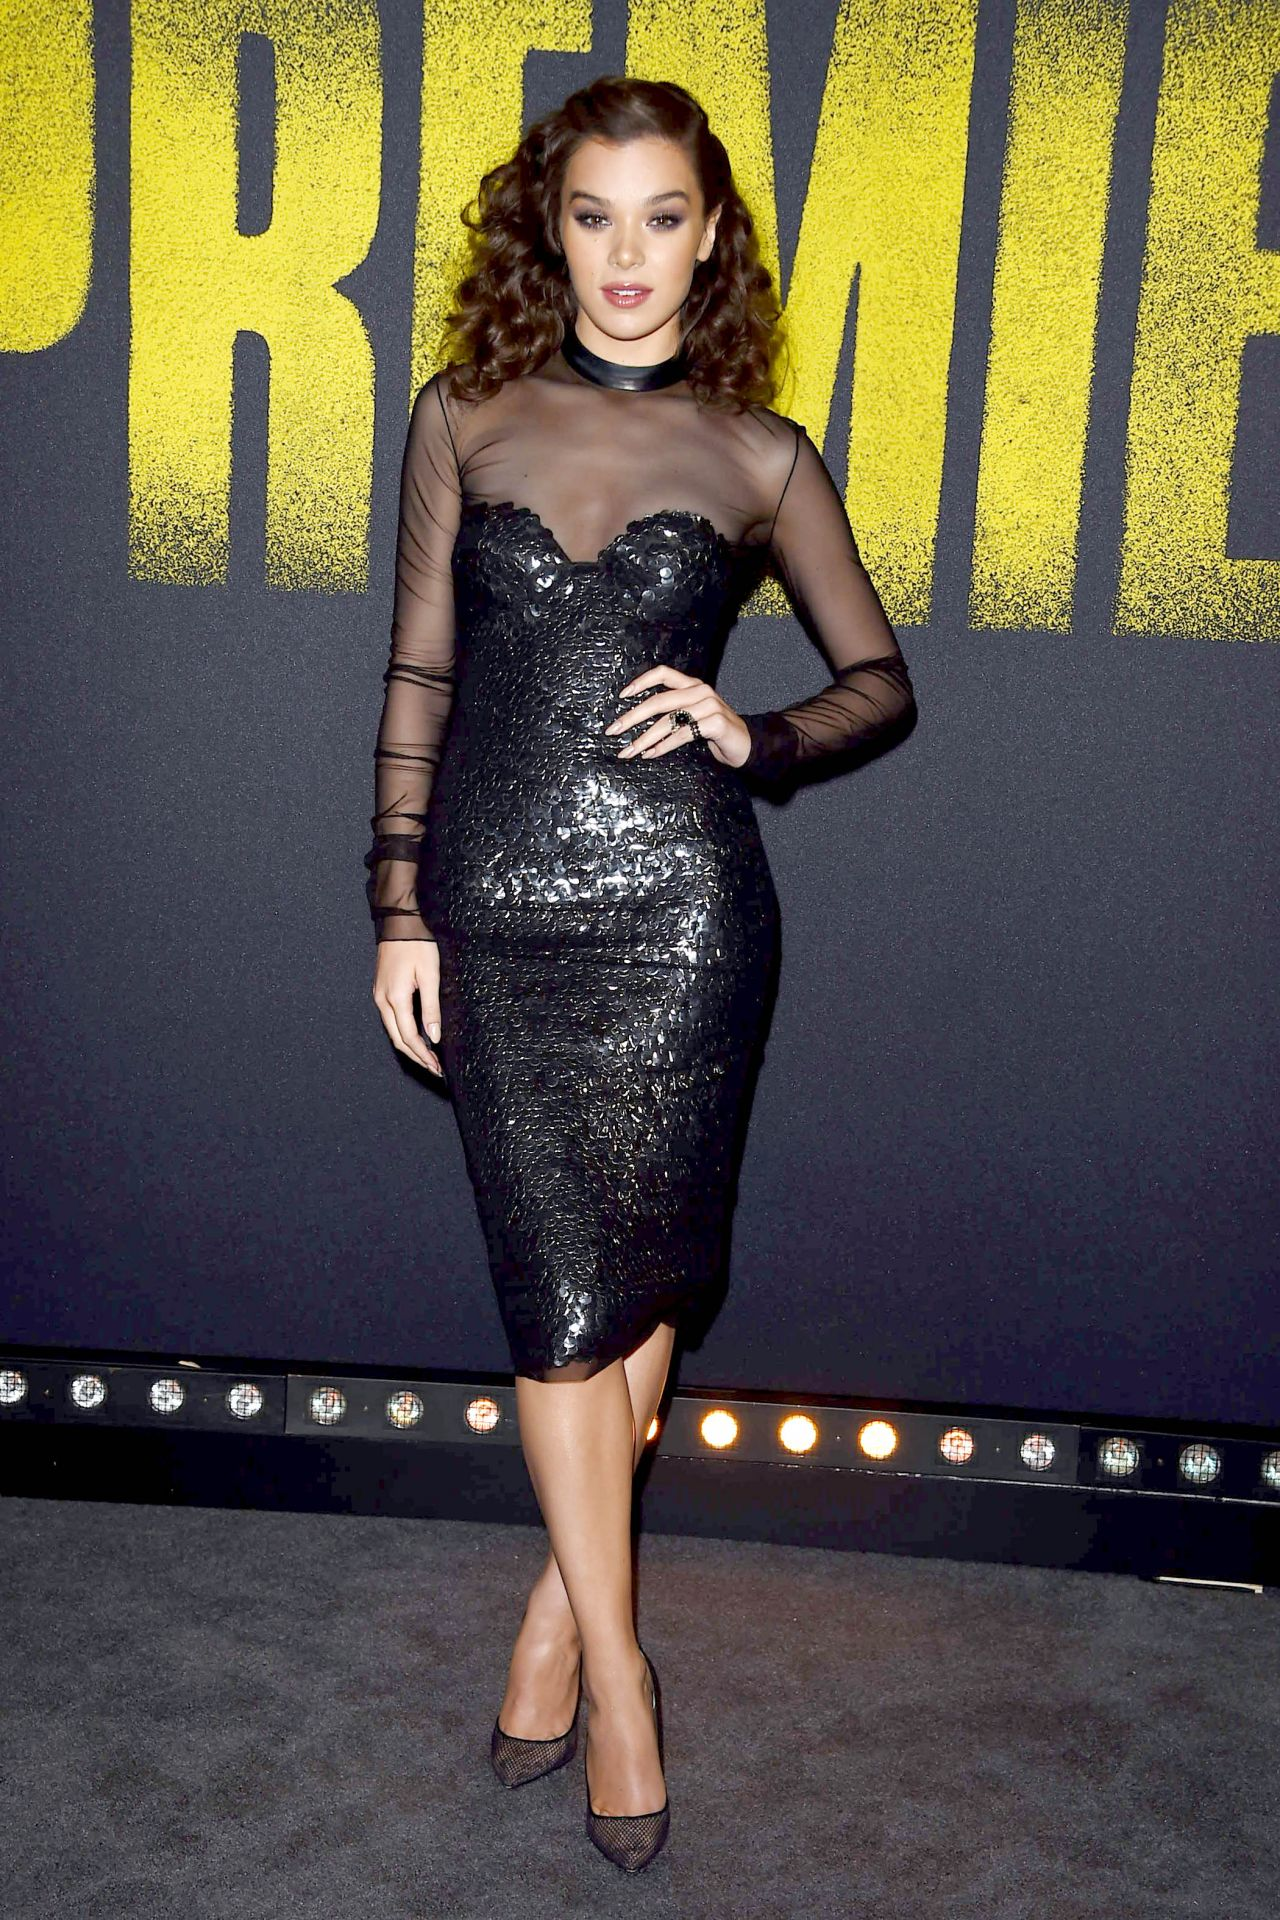 http://celebmafia.com/wp-content/uploads/2017/12/hailee-steinfeld-pitch-perfect-3-premiere-in-los-angeles-3.jpg